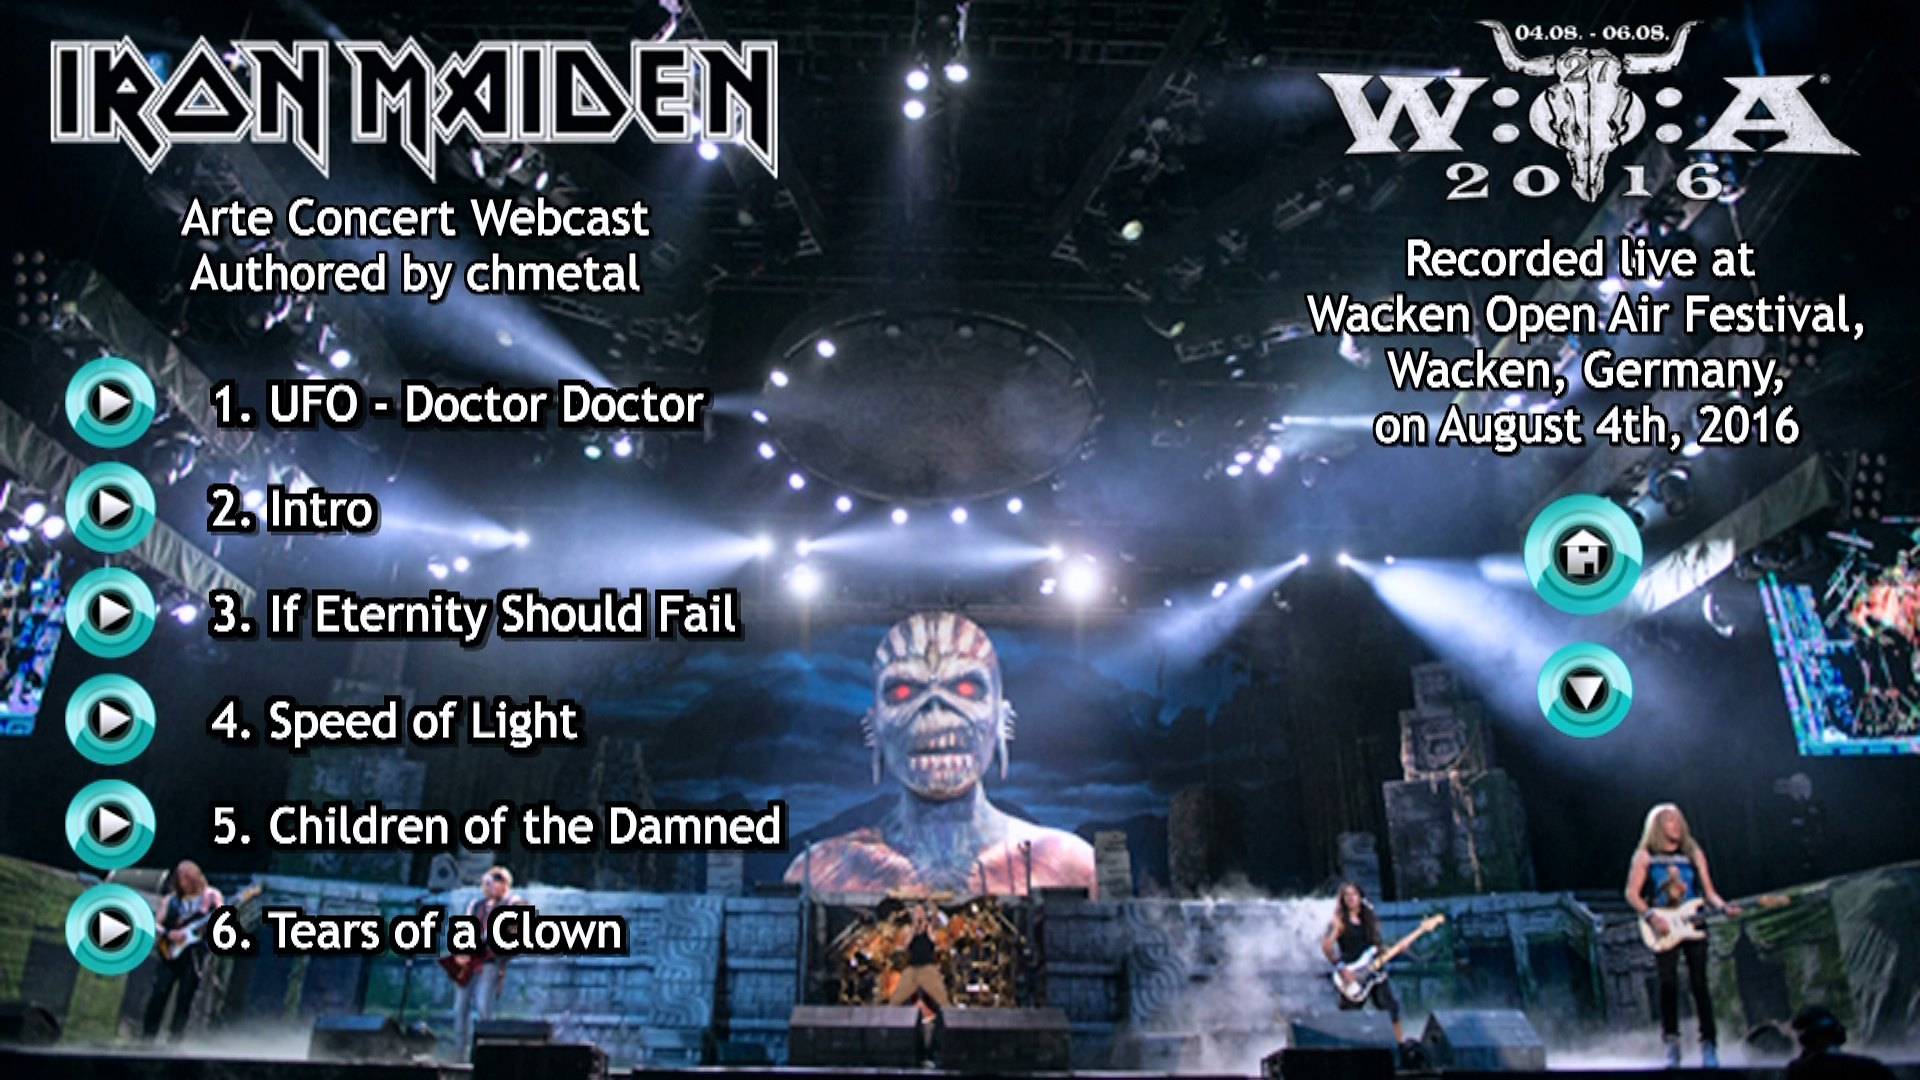 Arte Concert Wacken Chmetal Bootlegs Video Recordings Powered By Myhobbysite